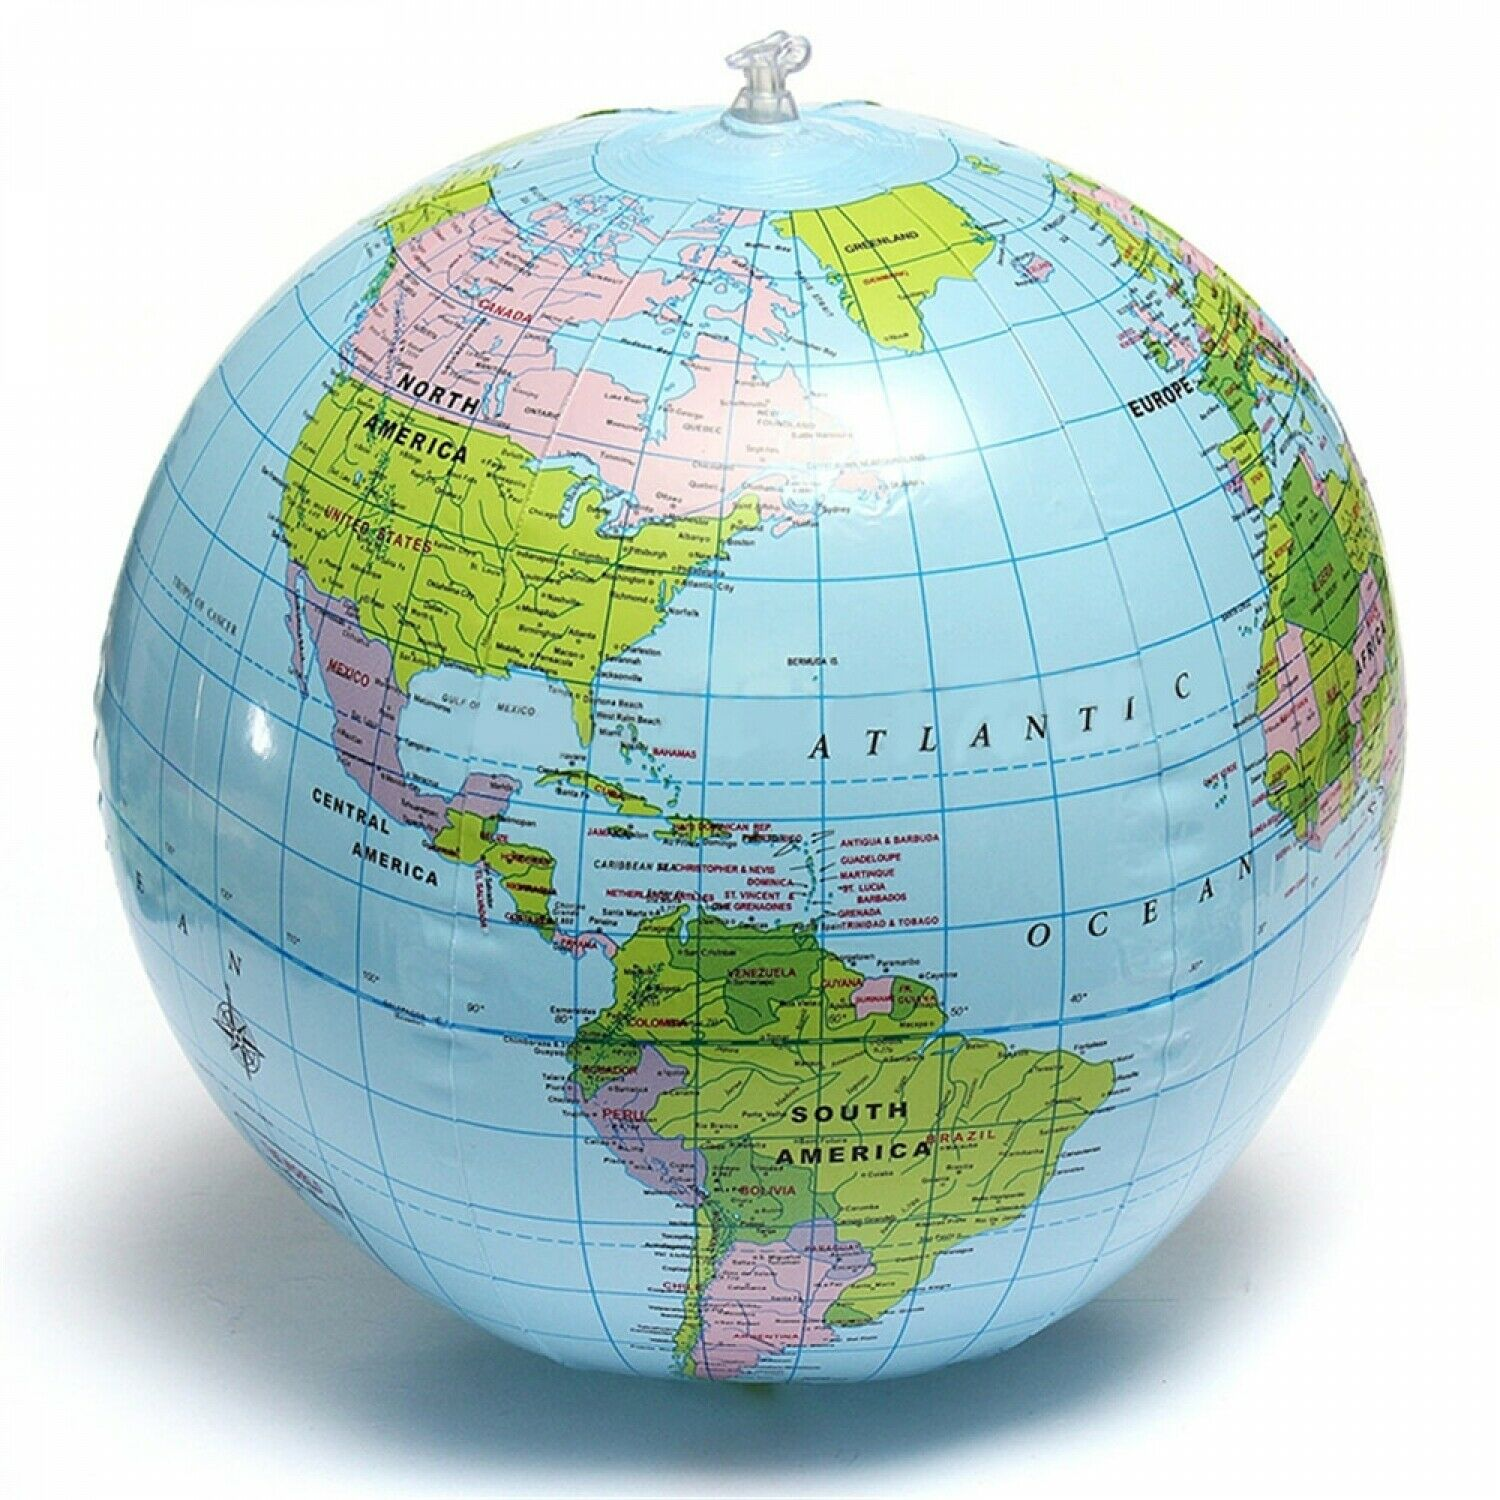 30cm Inflatable Blow Up World Globe Earth Map Ball Educational Planet Earth Ball Ocean Kid Learning Geography Toy Home 3